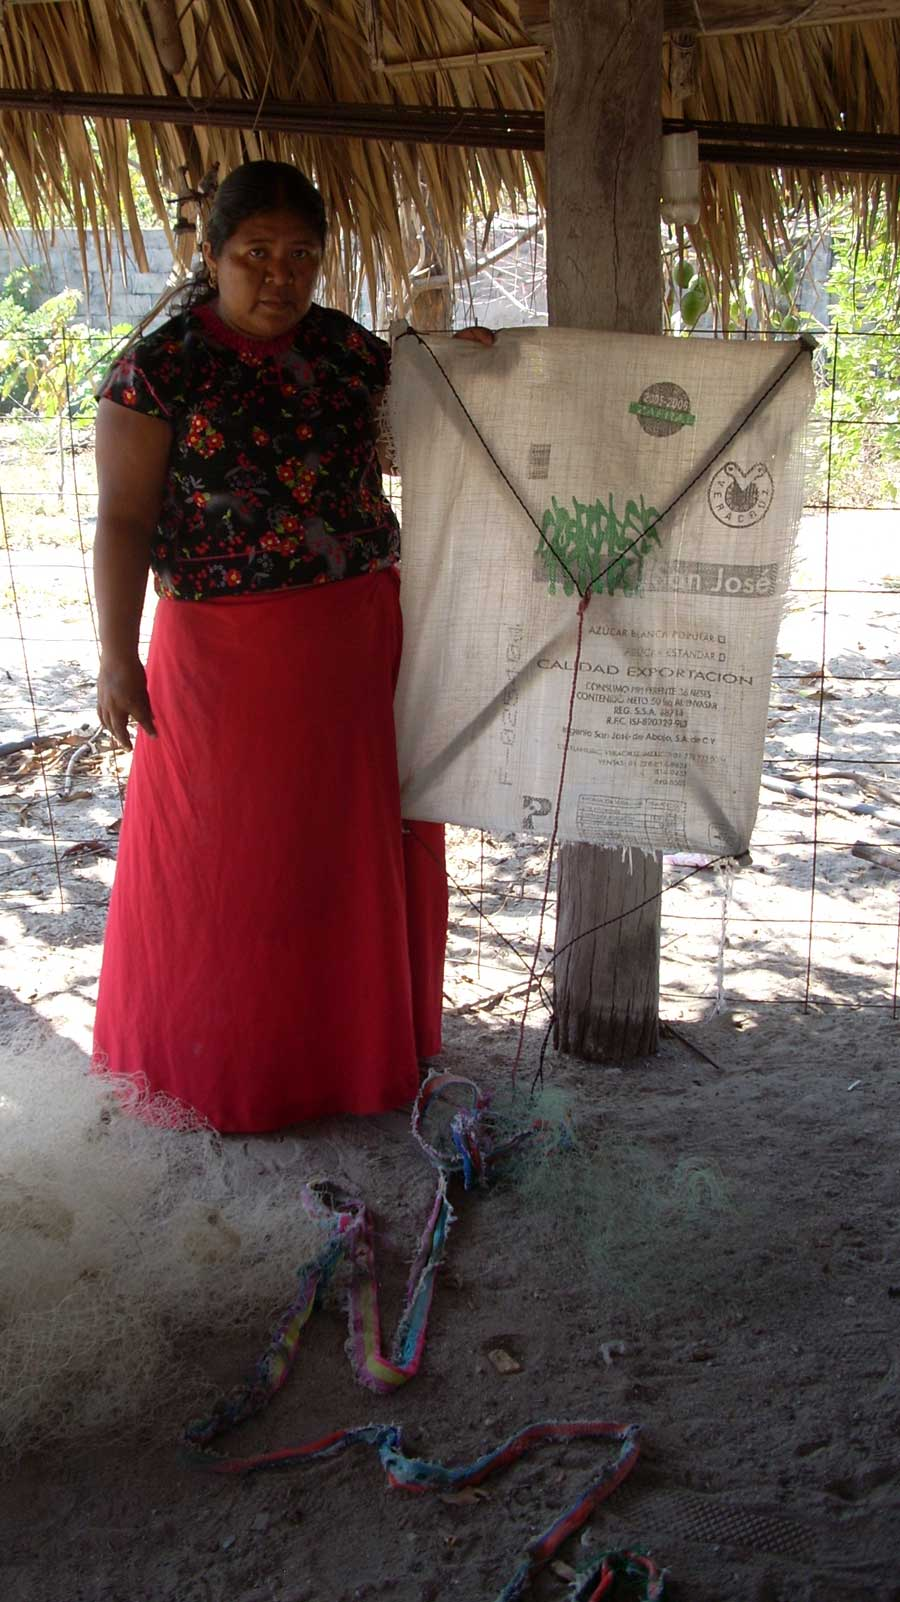 Photograph of woman holding a fishing kite and nets